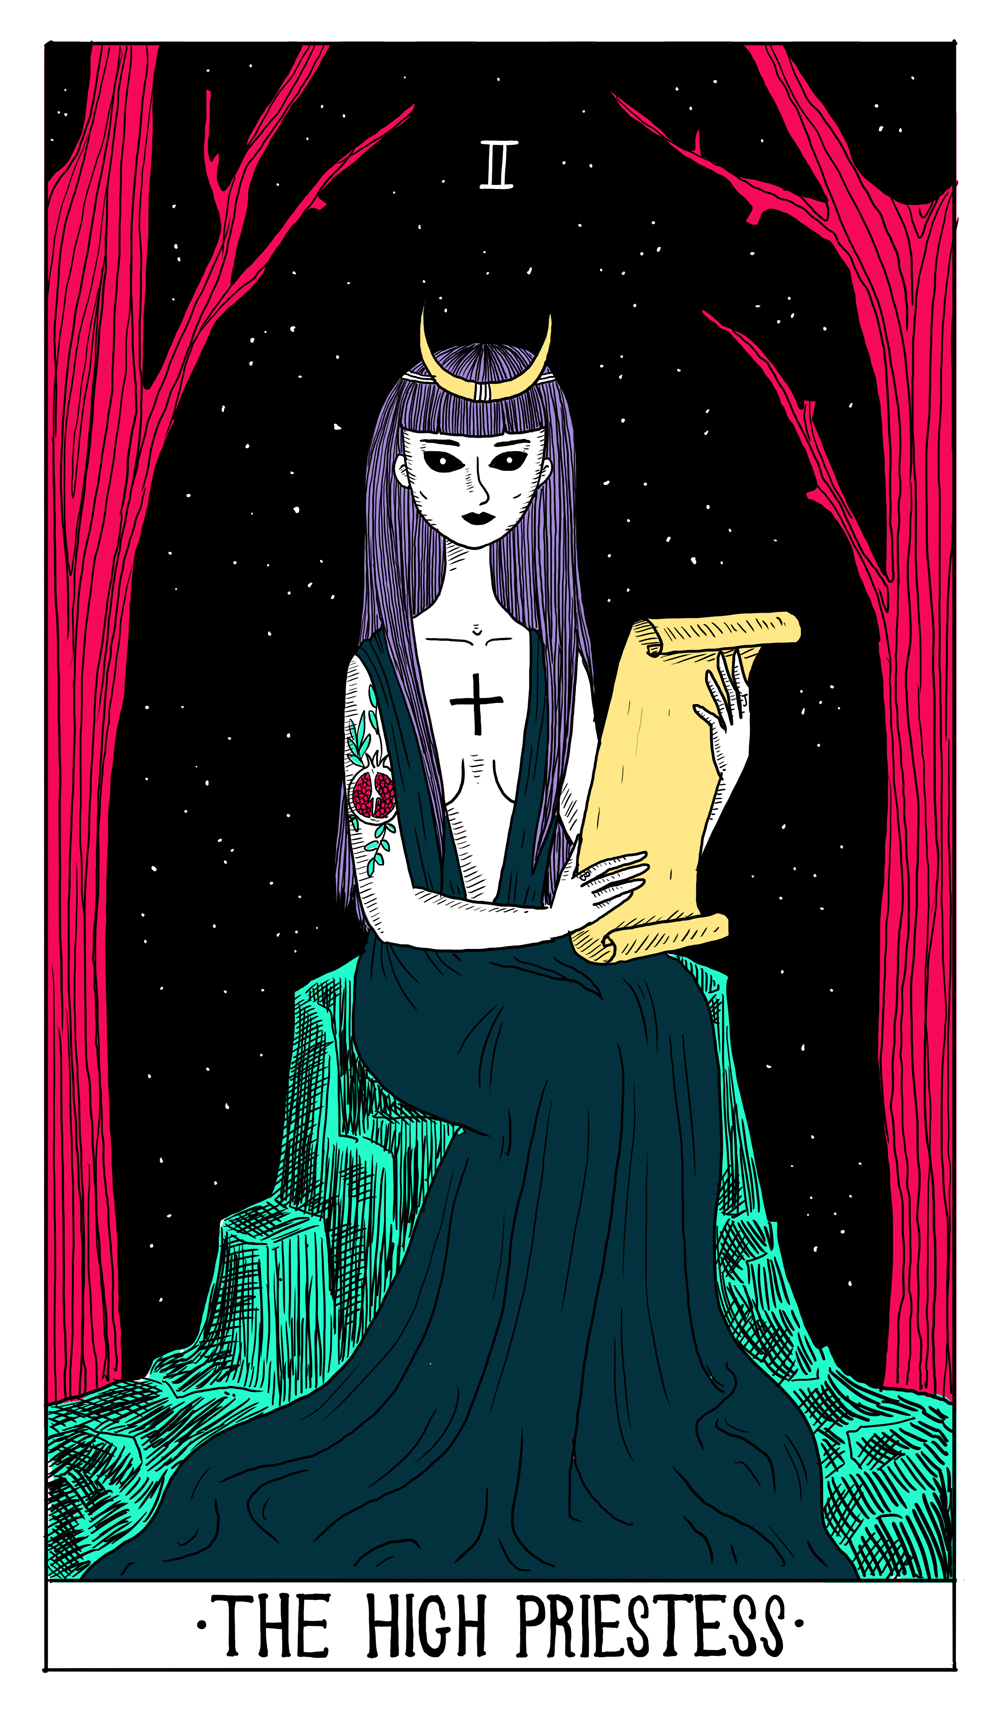 """The High Priestess"" by Madel Floyd"